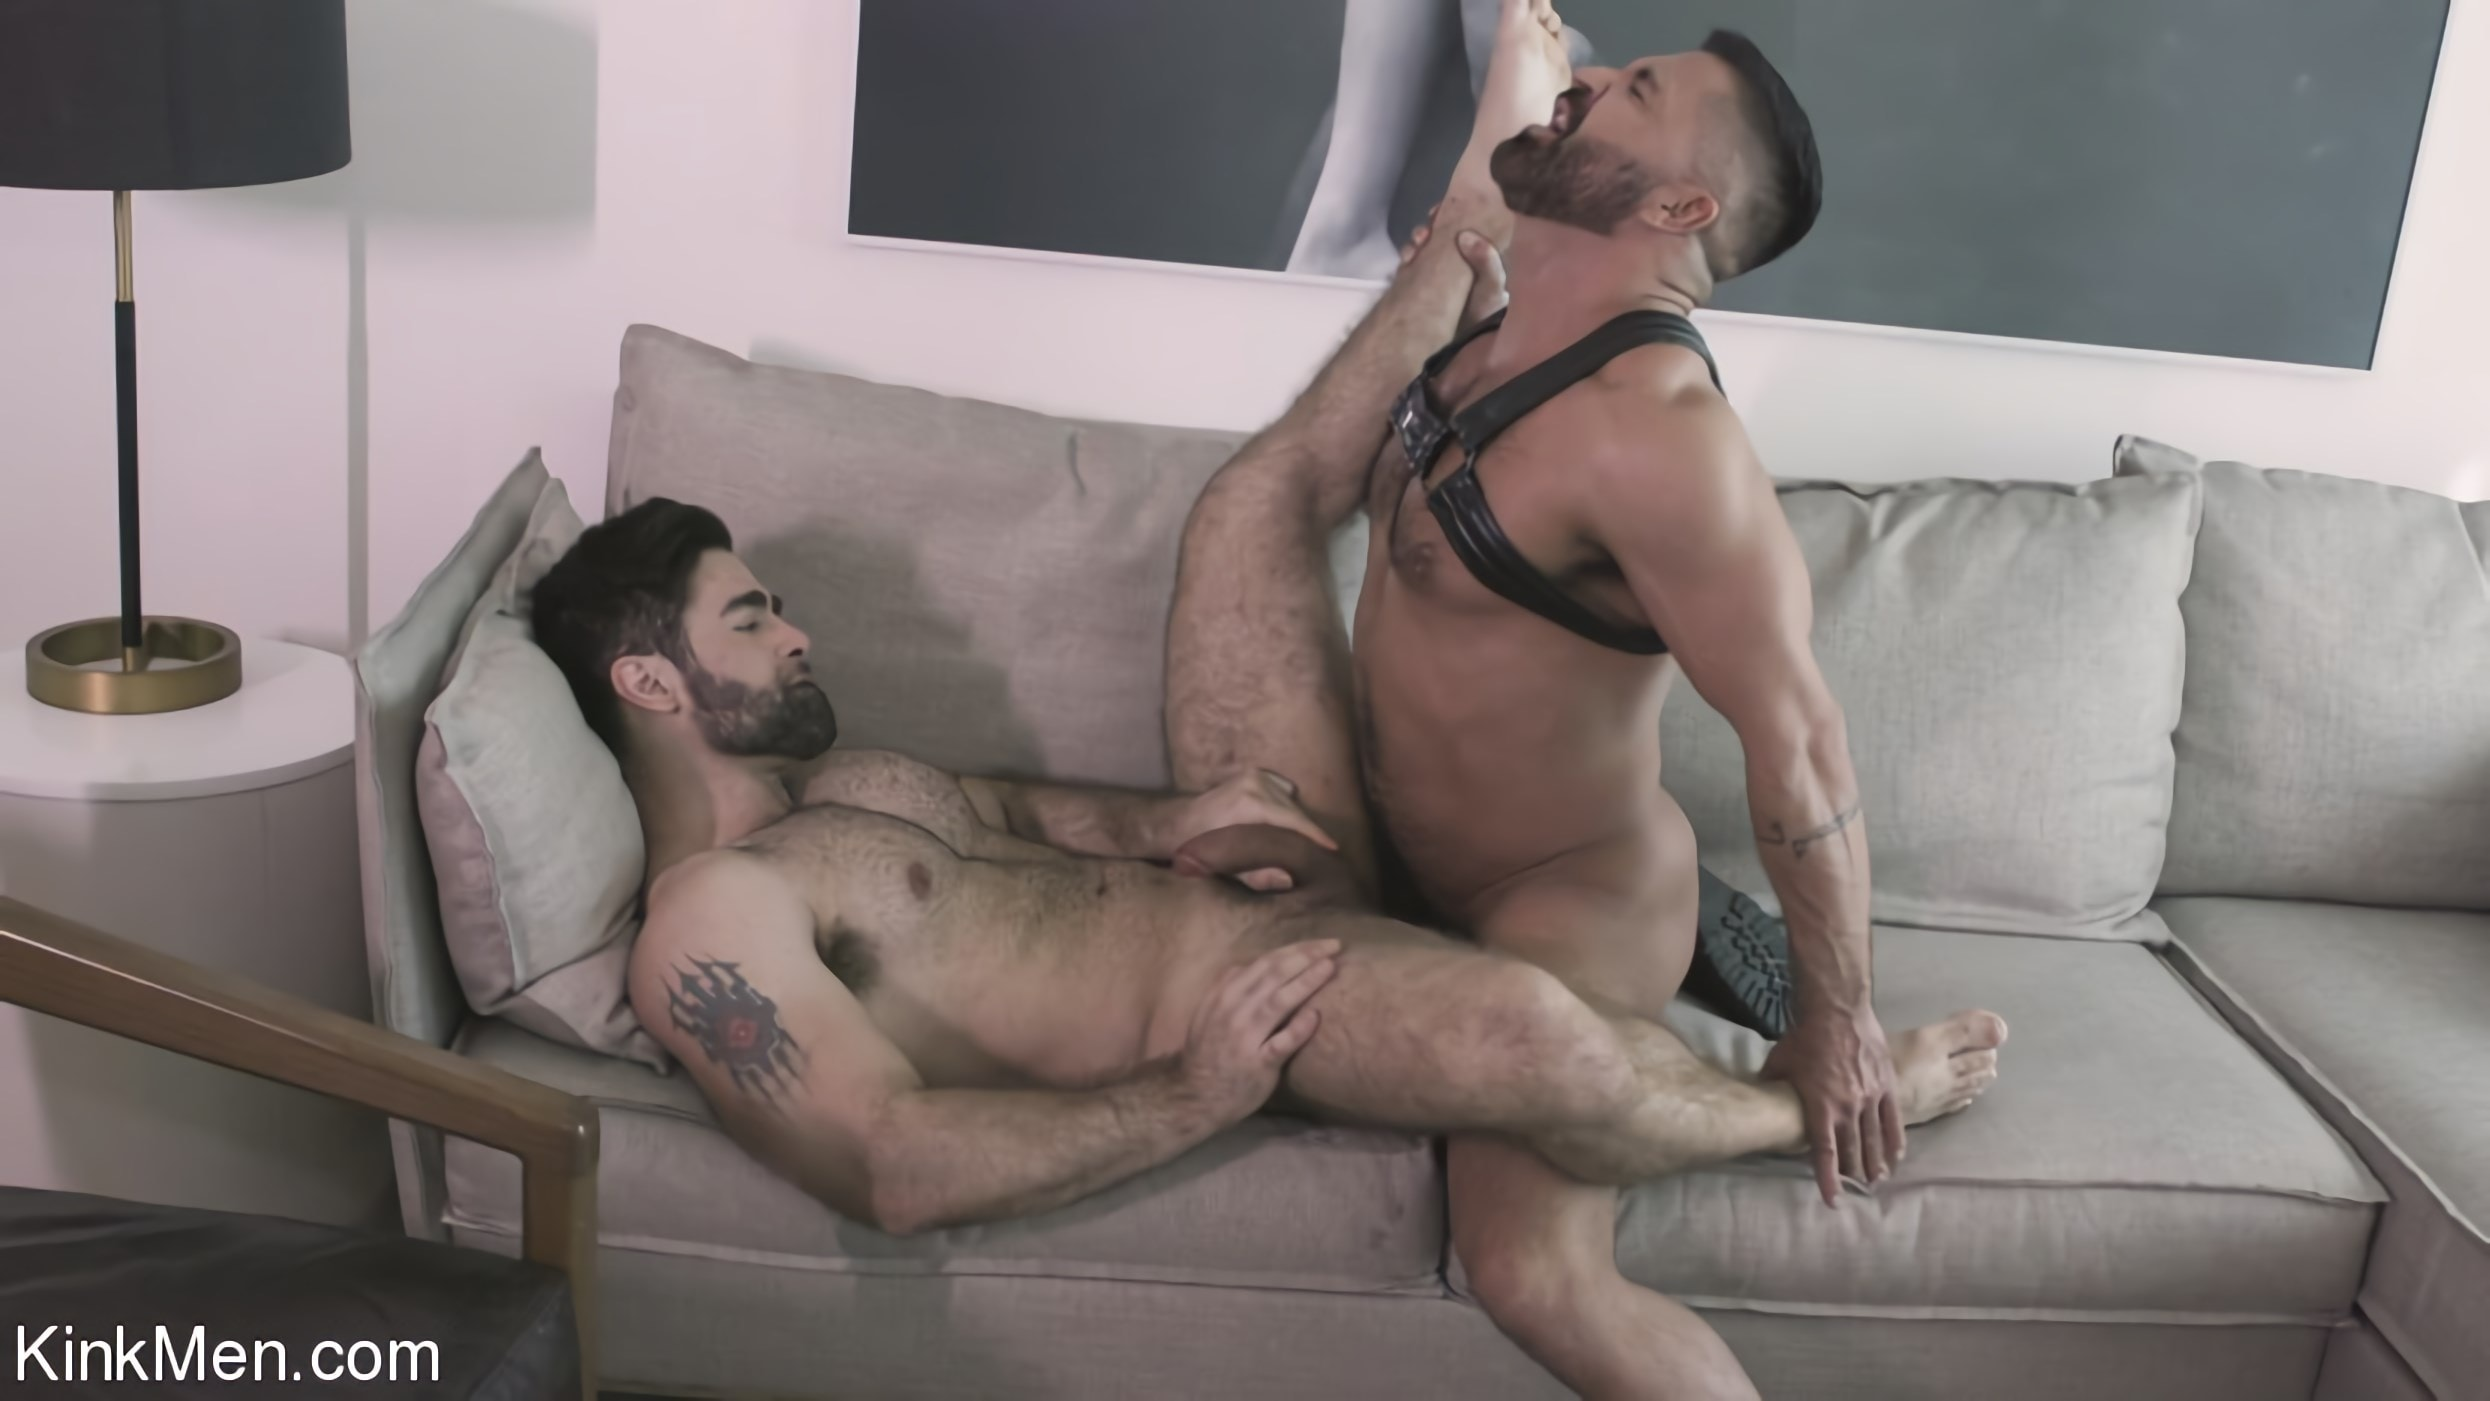 Dominic Pacifico - Good Little Bitch Boy: Dominic Pacifico takes Lucas Leon's Hungry Hole | Picture (13)